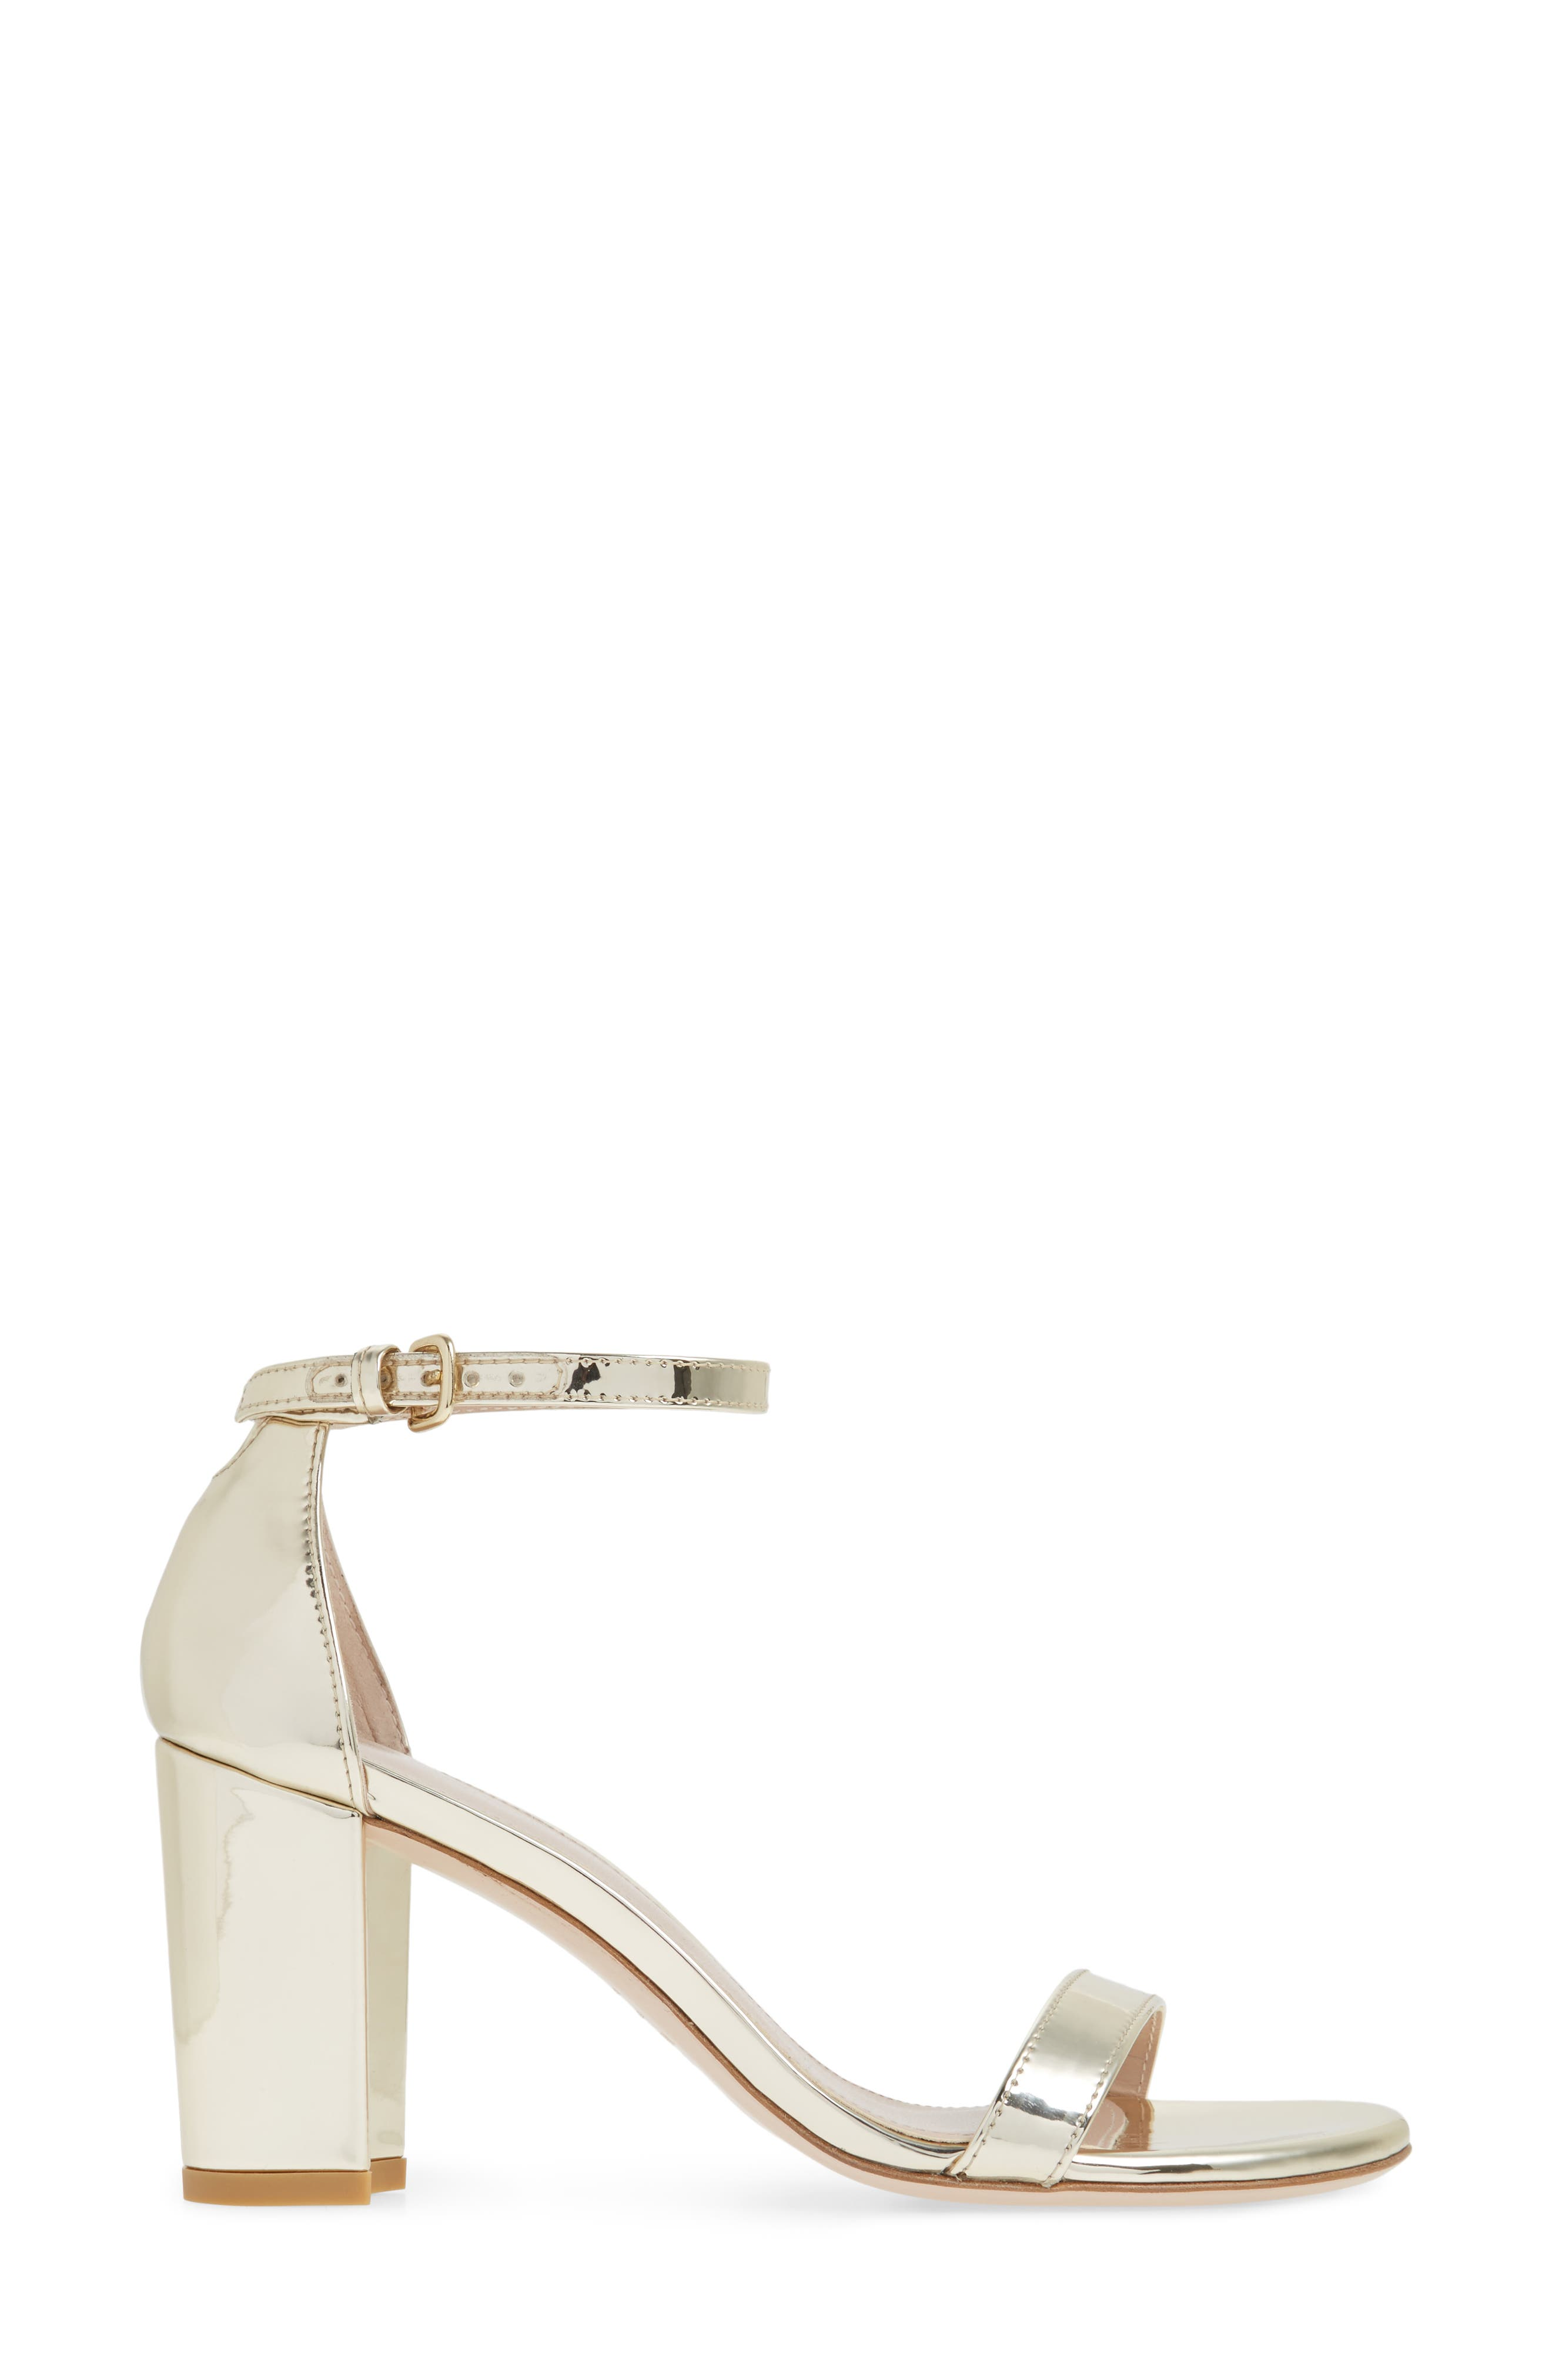 NearlyNude Ankle Strap Sandal,                             Alternate thumbnail 63, color,